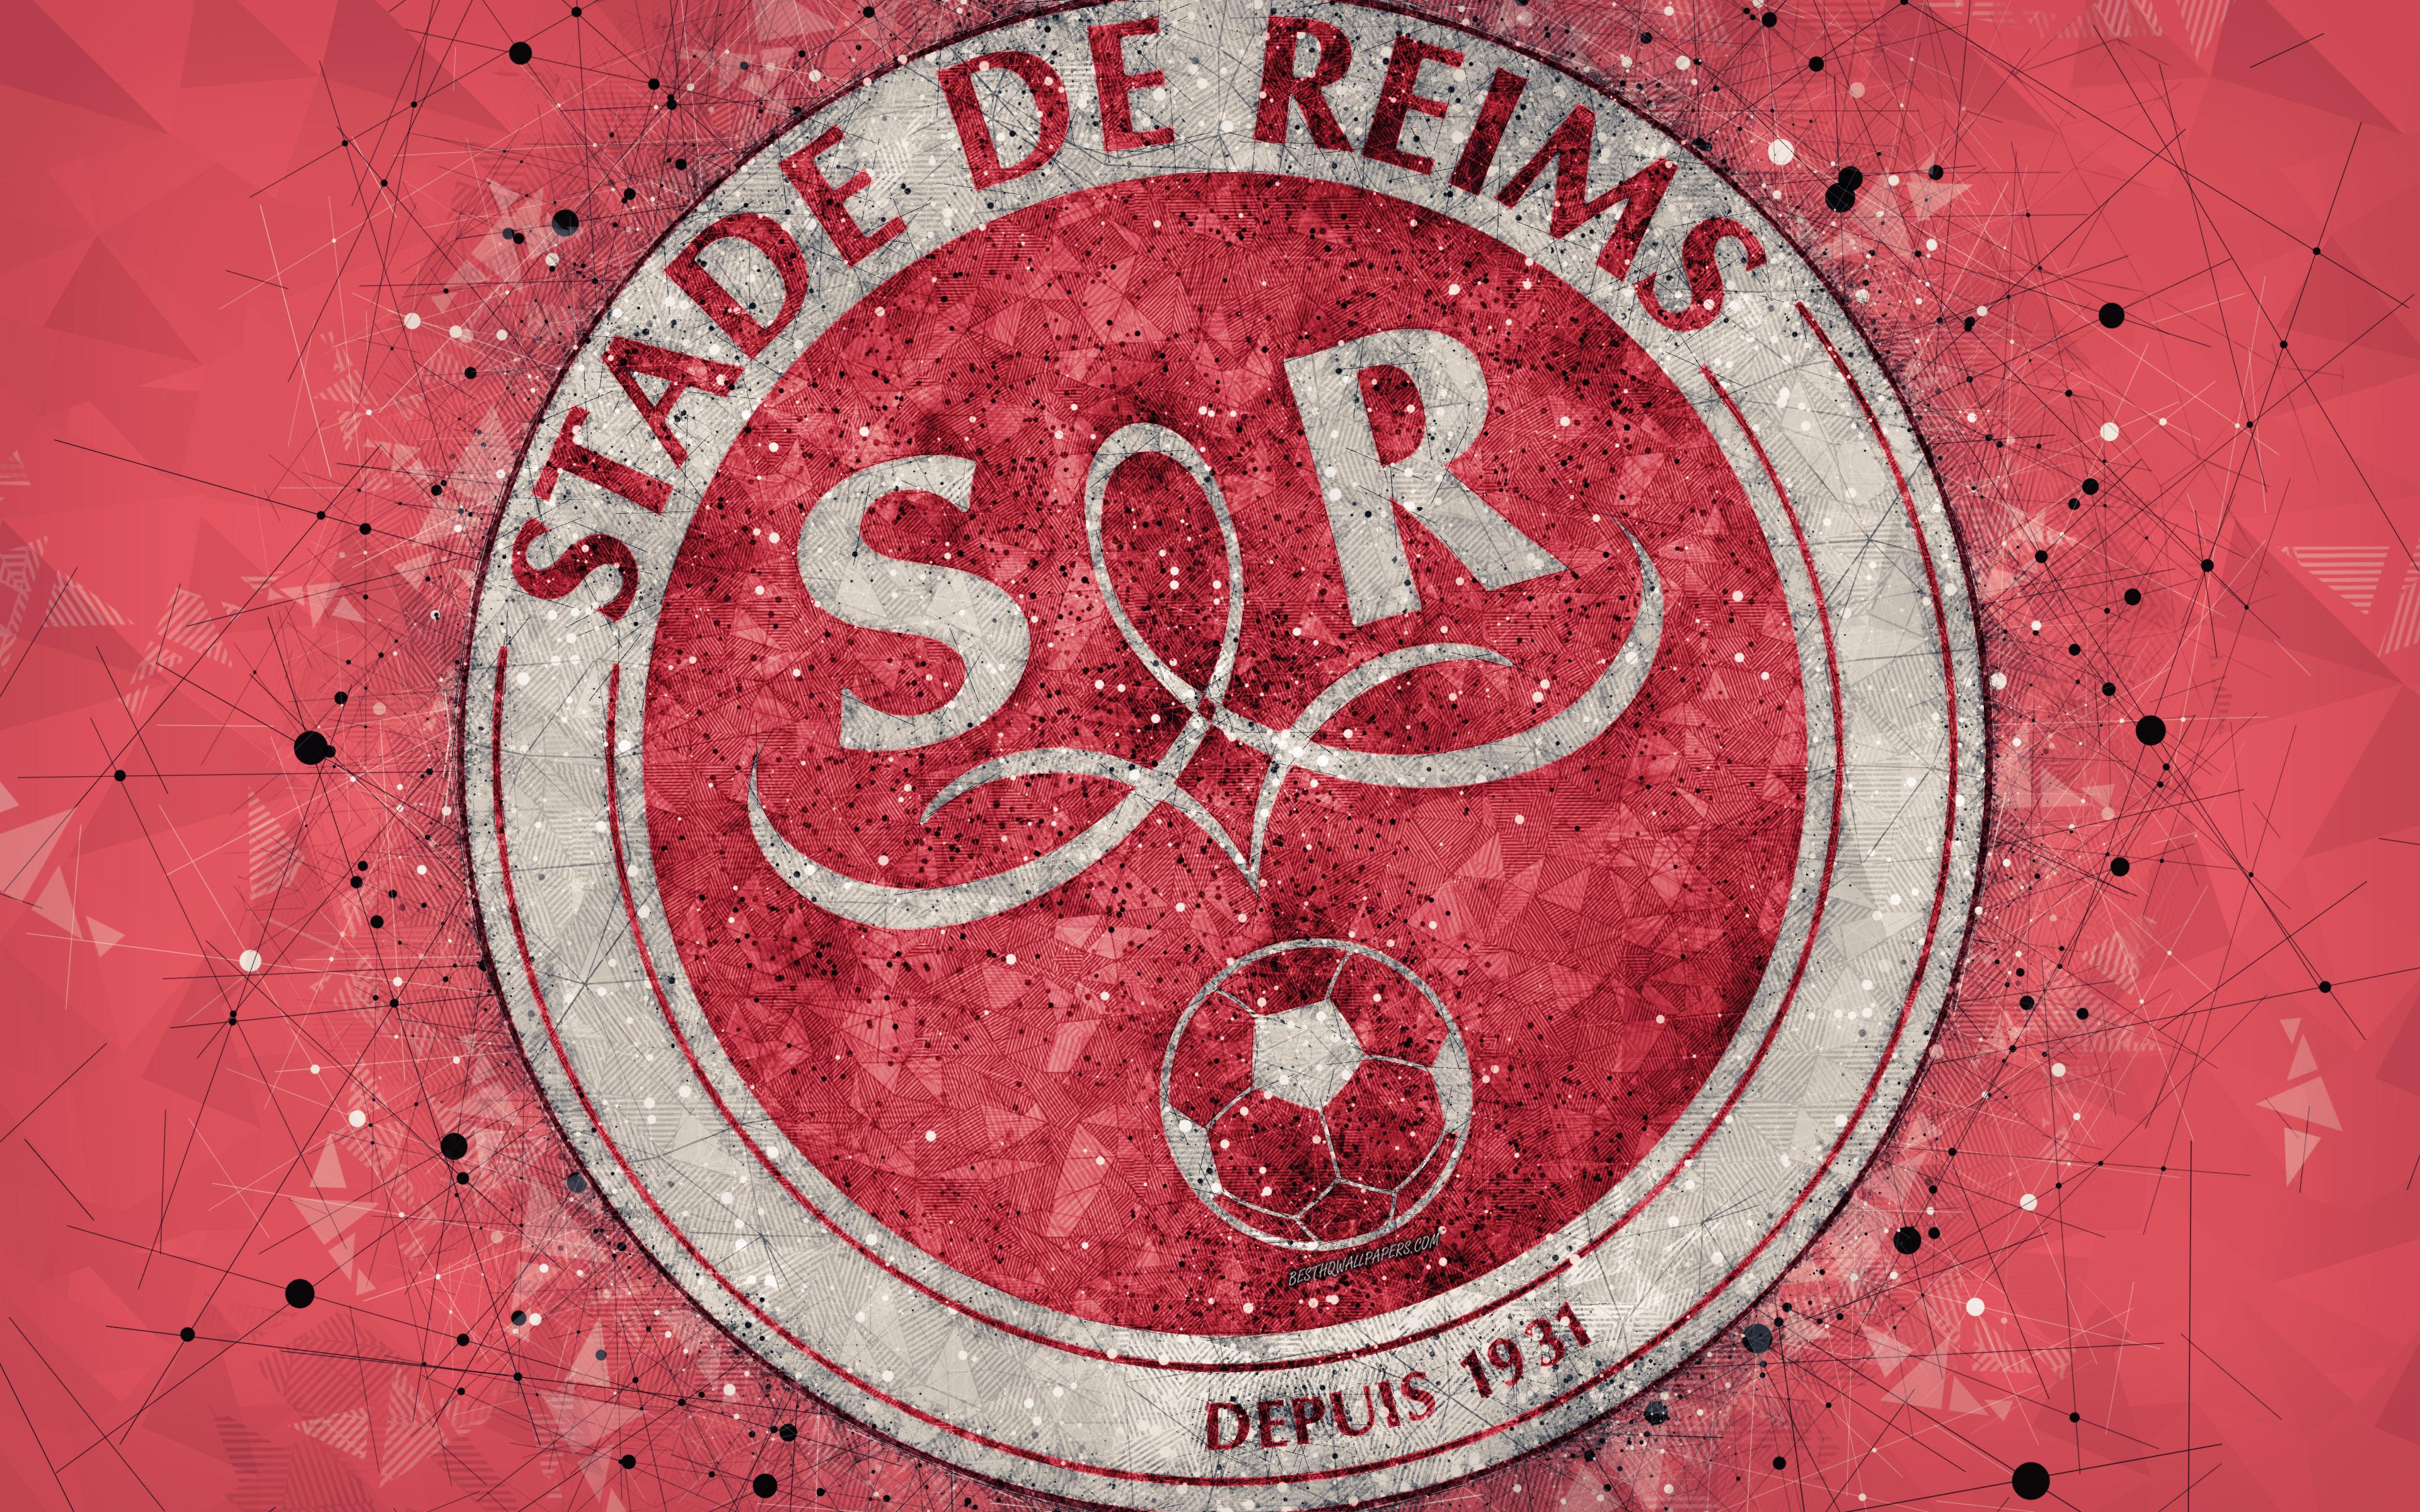 Download wallpapers Stade de Reims, 4k, logo, geometric art, French